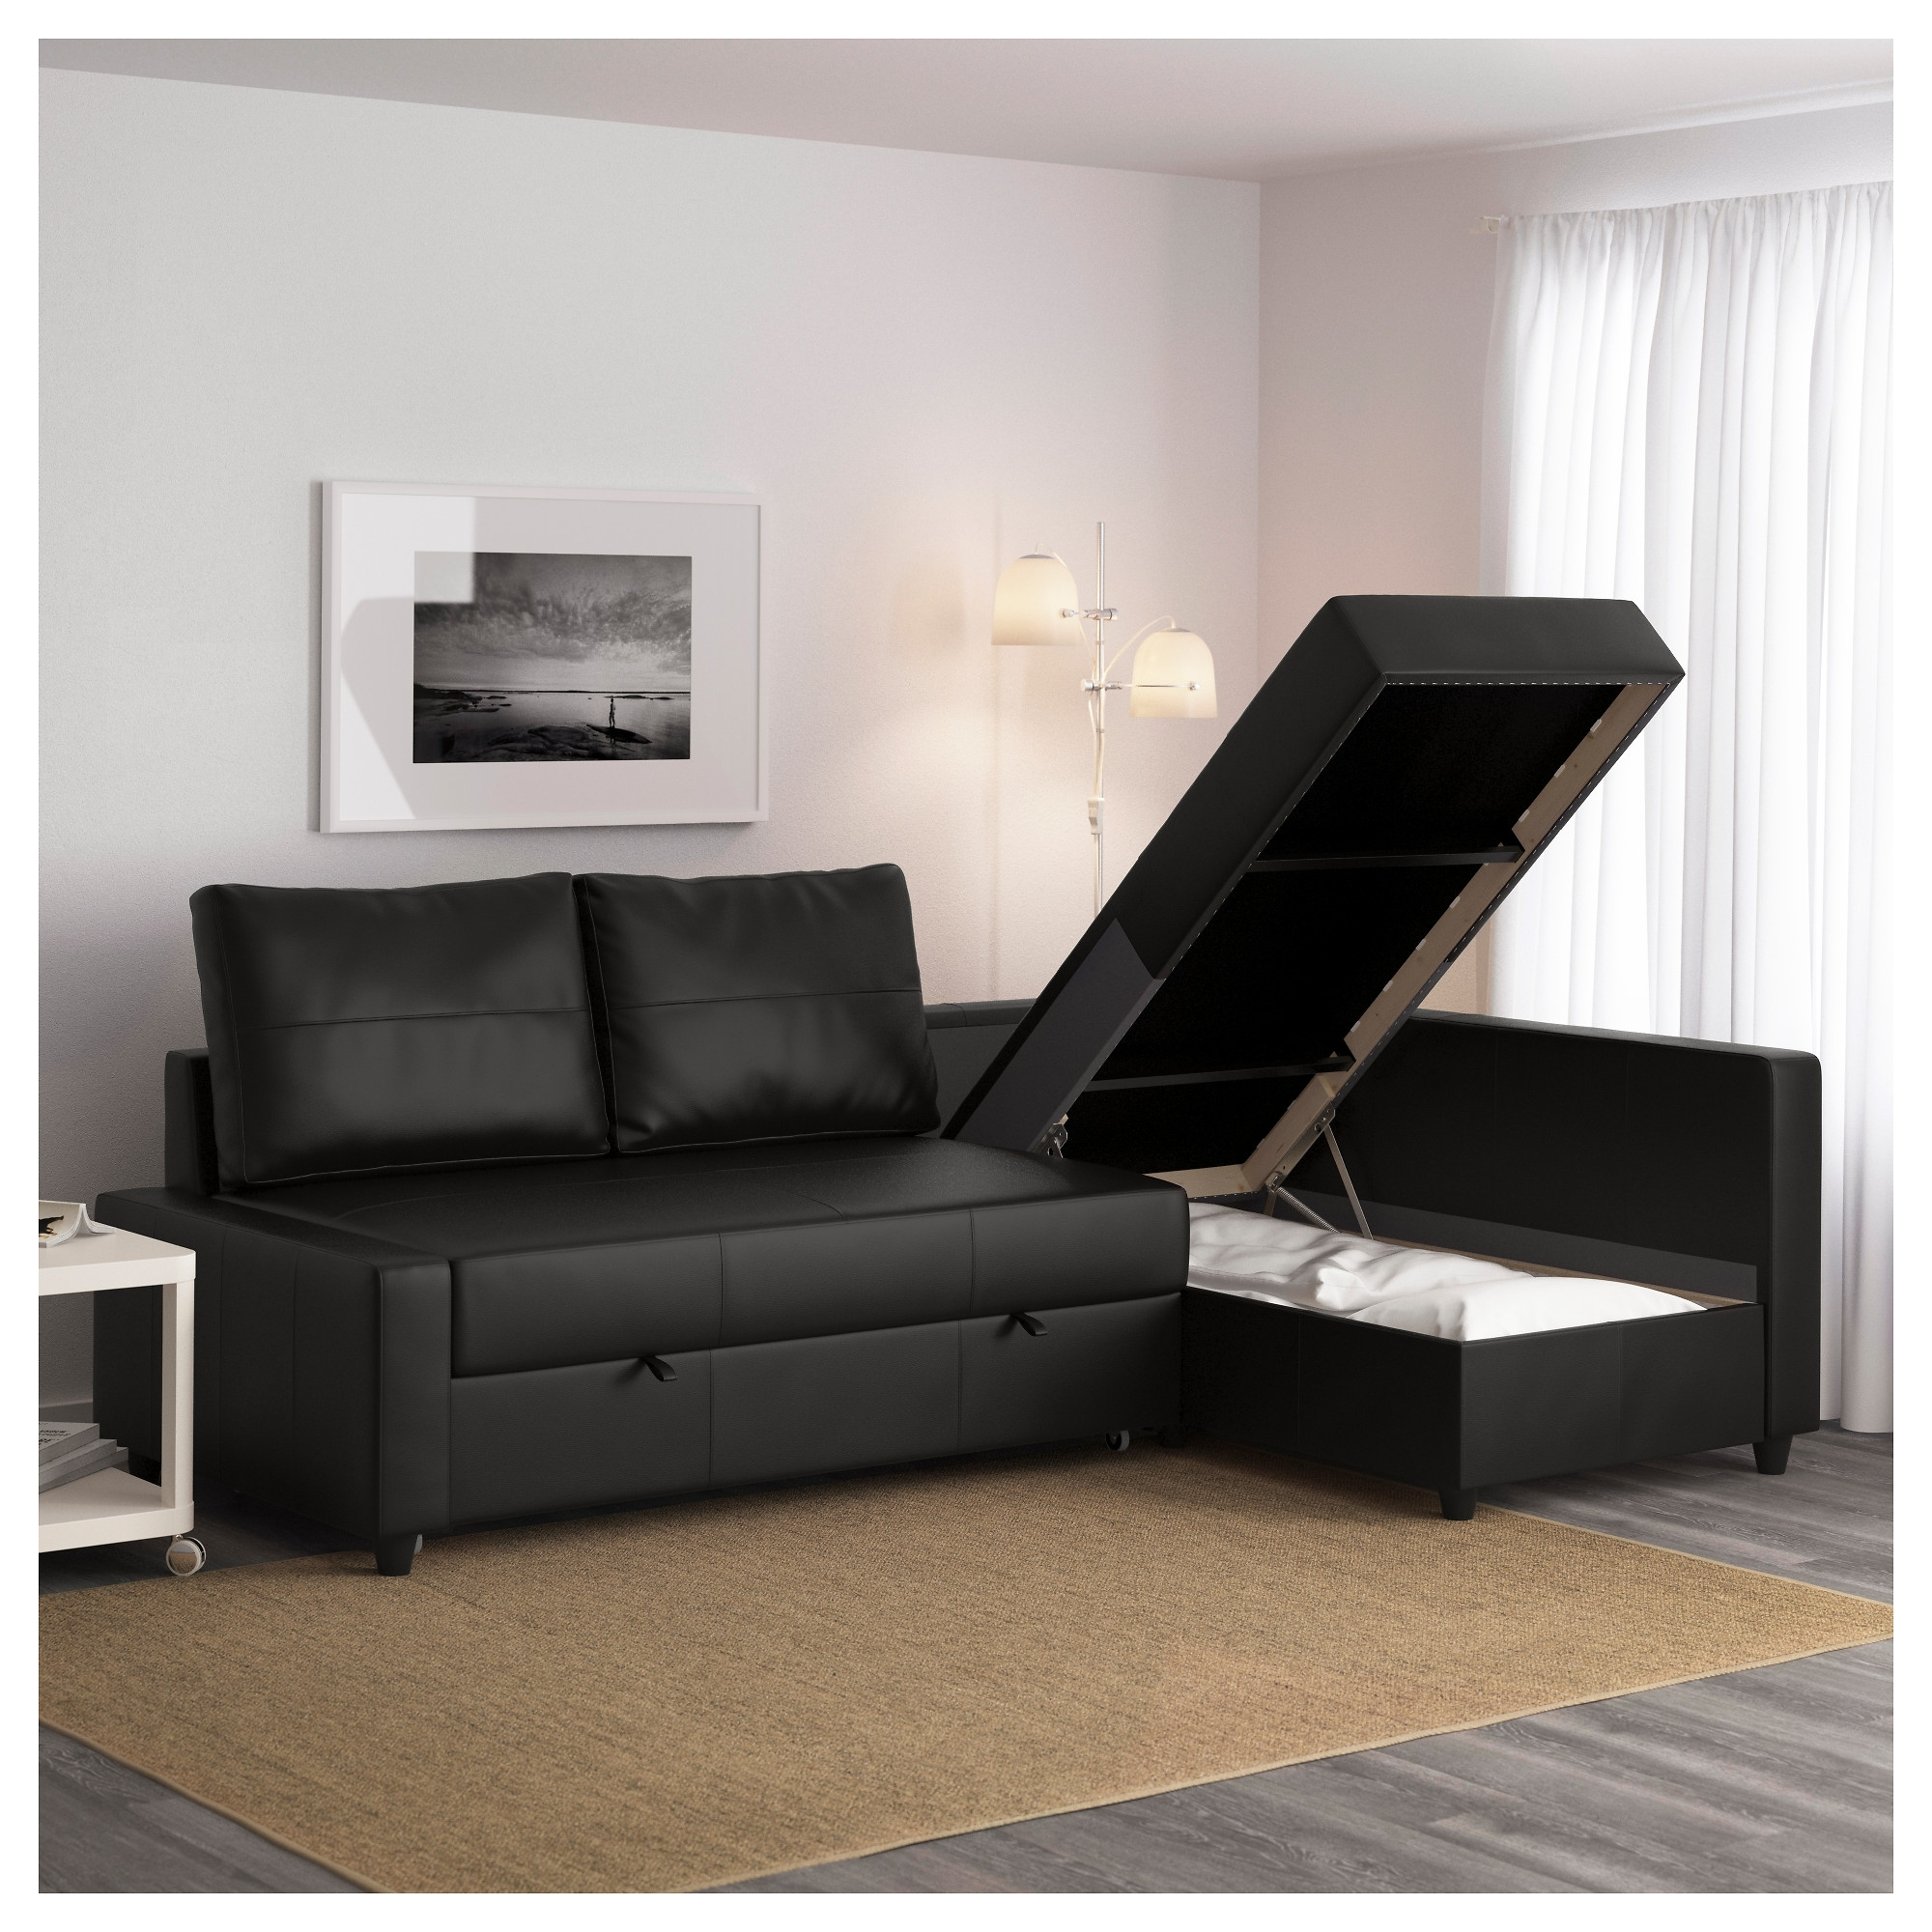 Sleeper Sofas With Storage Chaise Intended For Popular Friheten Sleeper Sectional,3 Seat W/storage – Skiftebo Dark Gray (View 9 of 15)